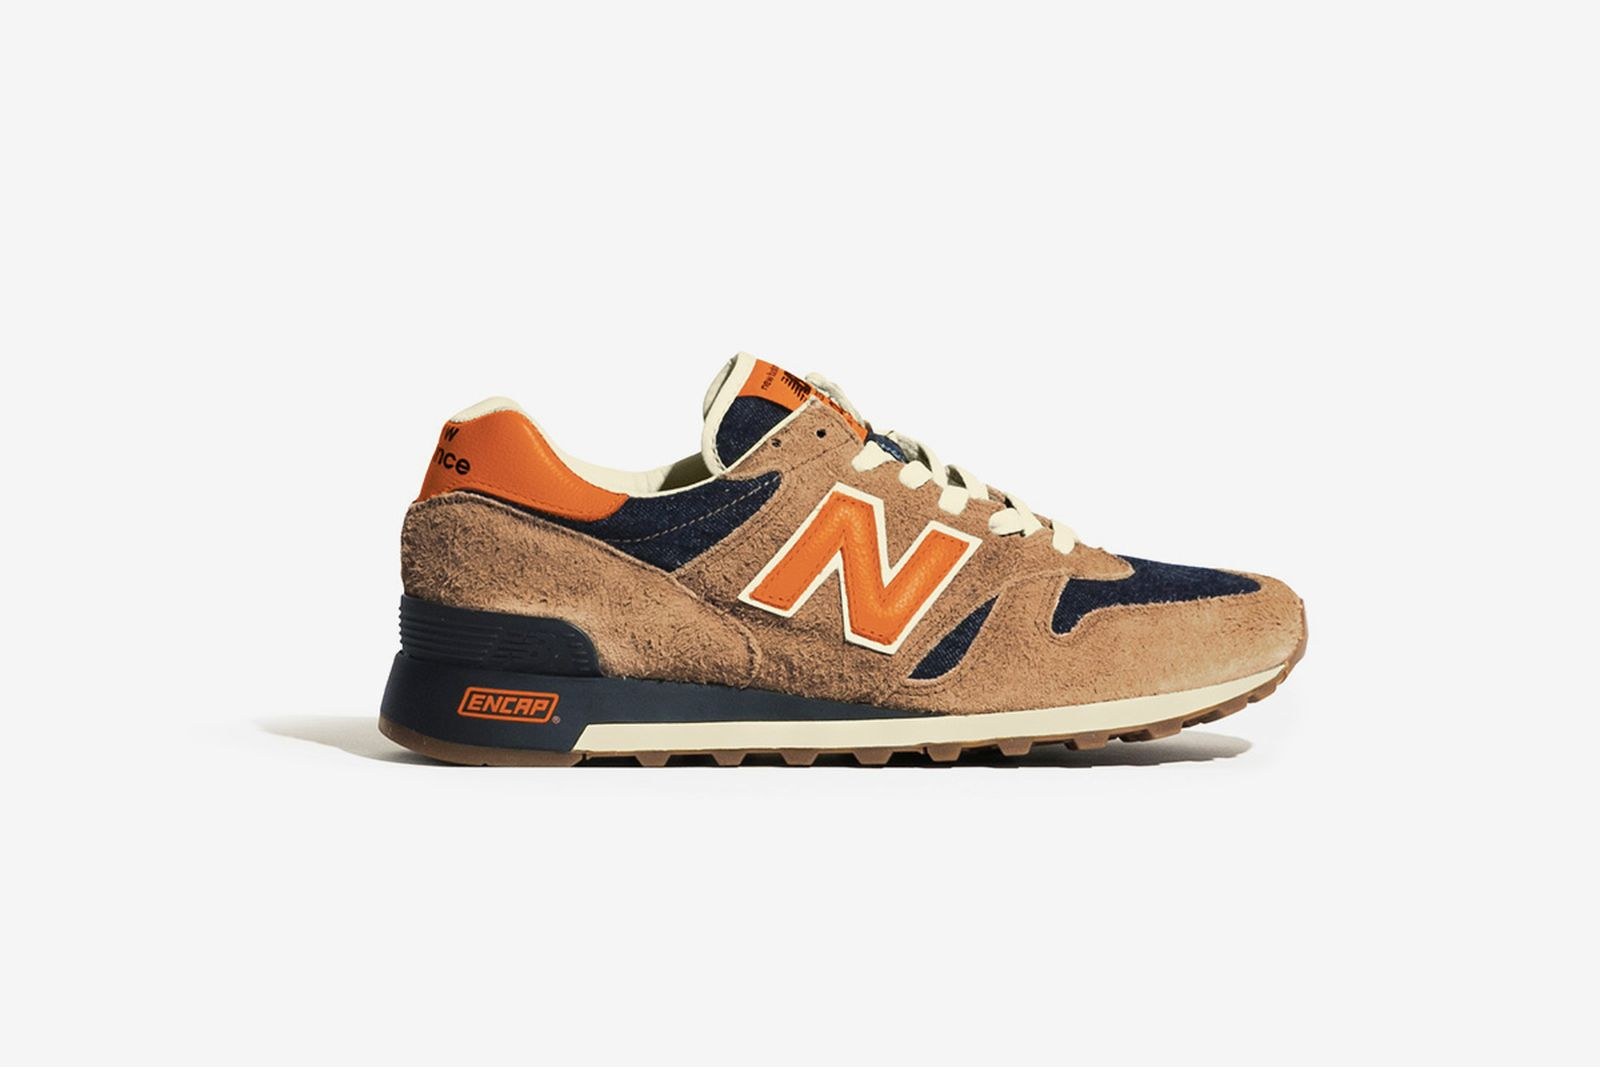 levis-new-balance-1300-release-date-price-10